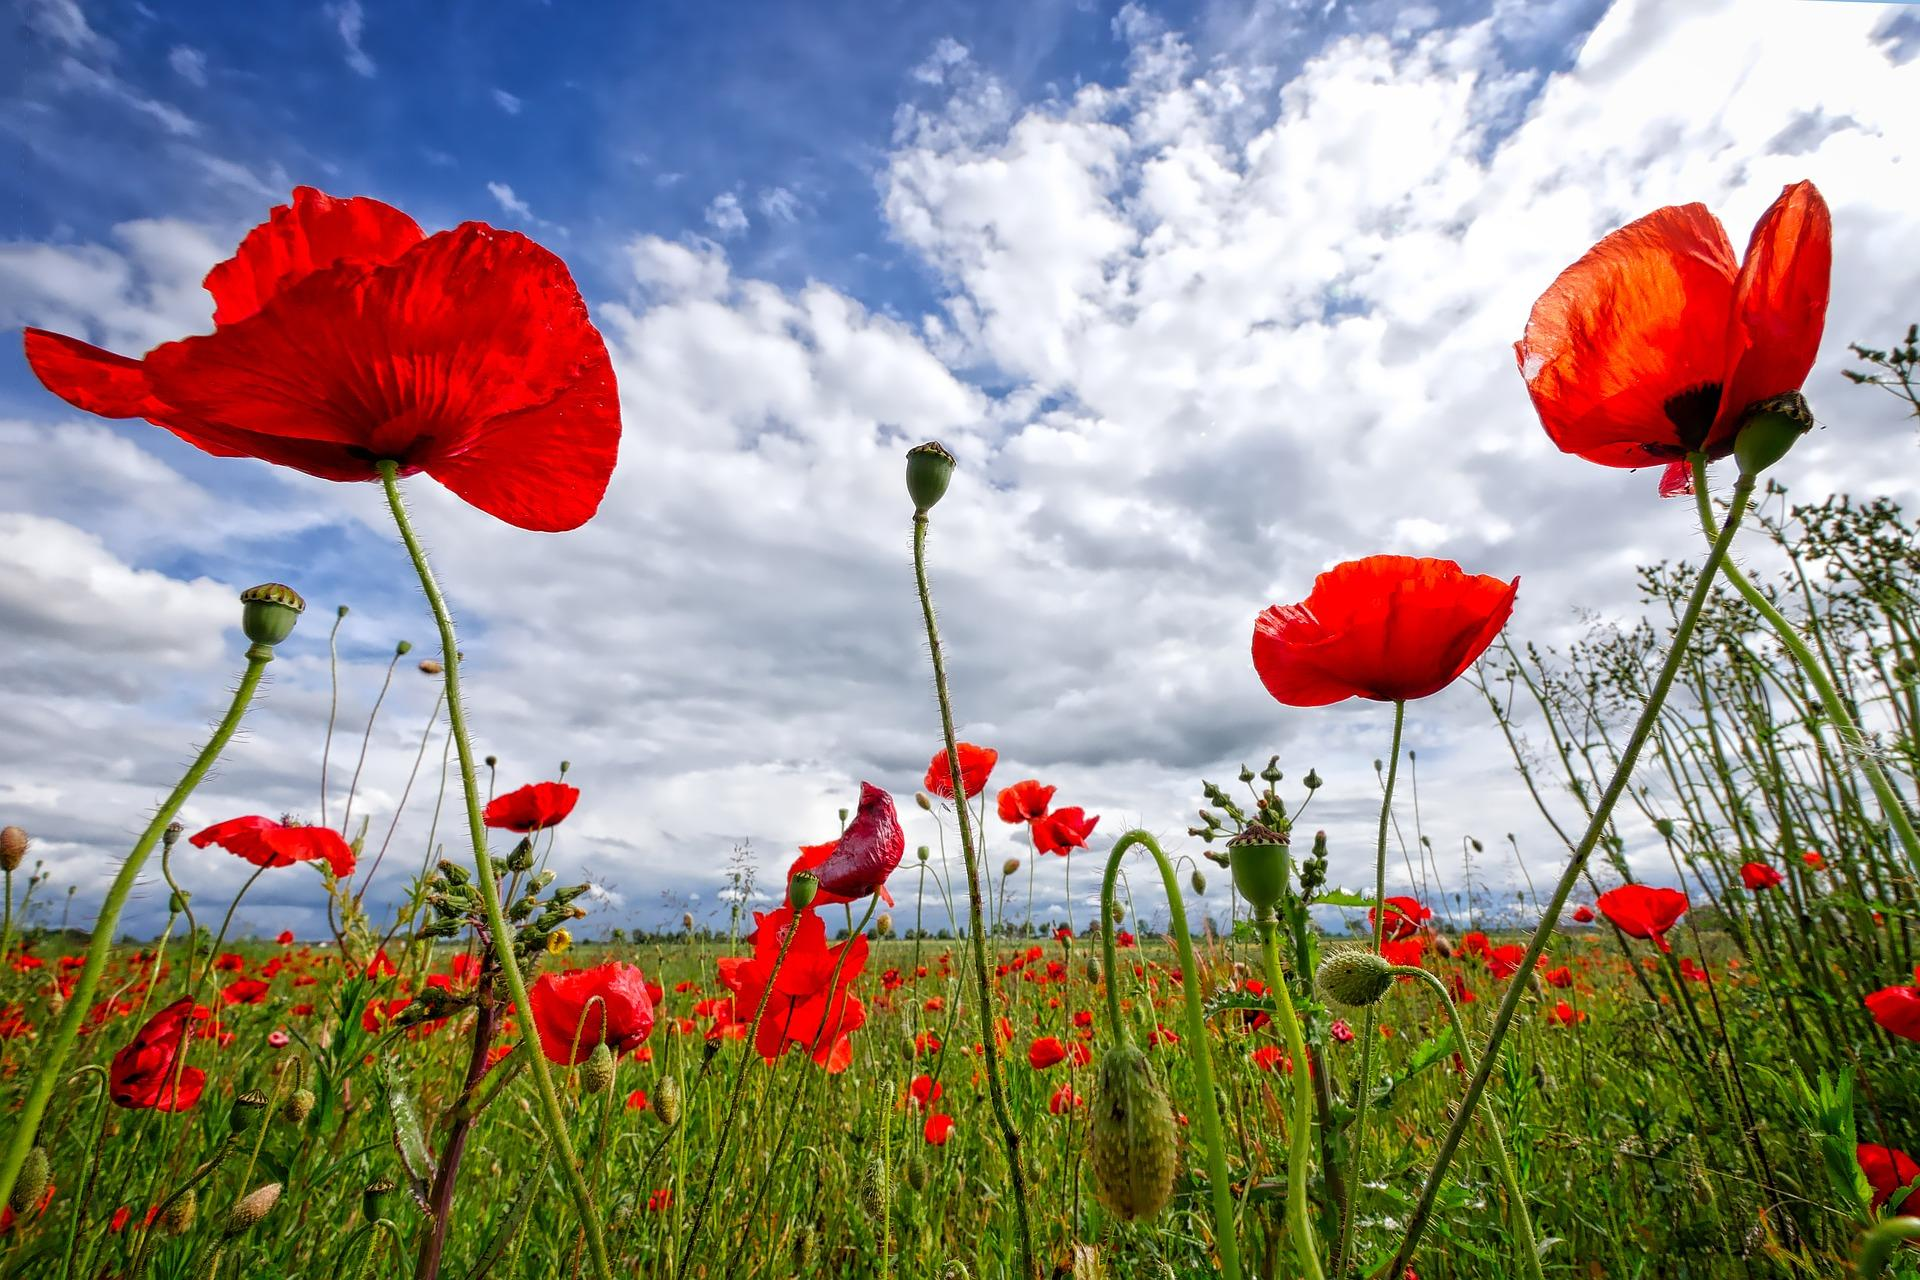 This year's Remembrance Sunday moves online